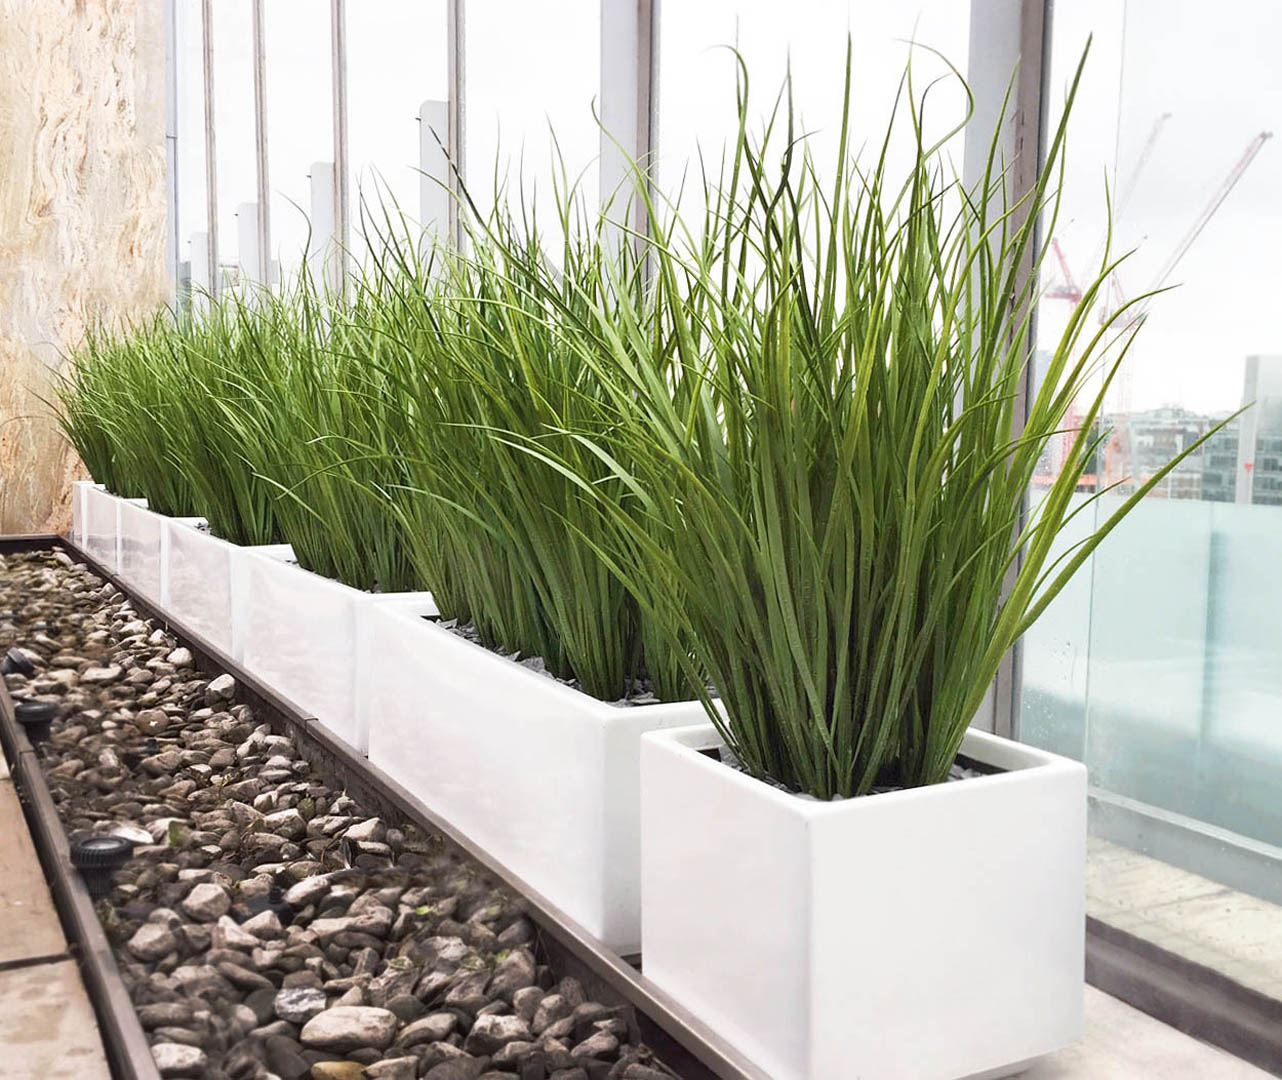 543 fake landscapes 500mm Marram grass in clients planters WC1